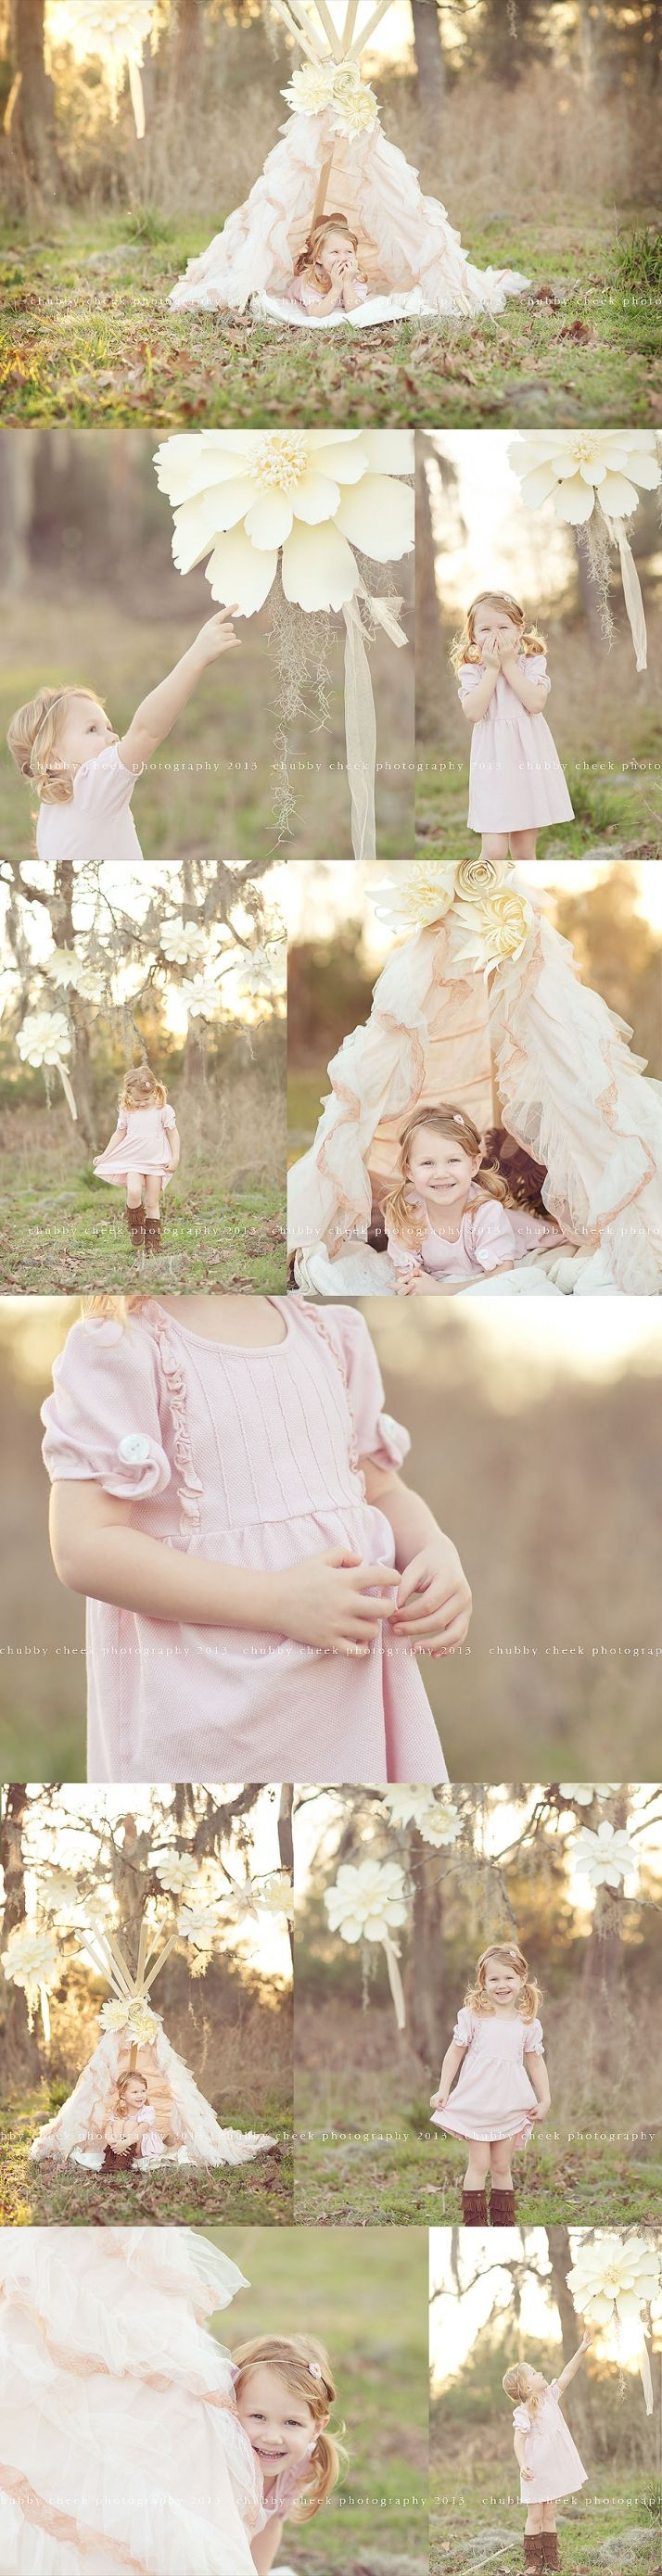 North Houston, Tomball, Cypress & The Woodlands TX Child & Family Photographer | chubby cheek photography blog - Part 20